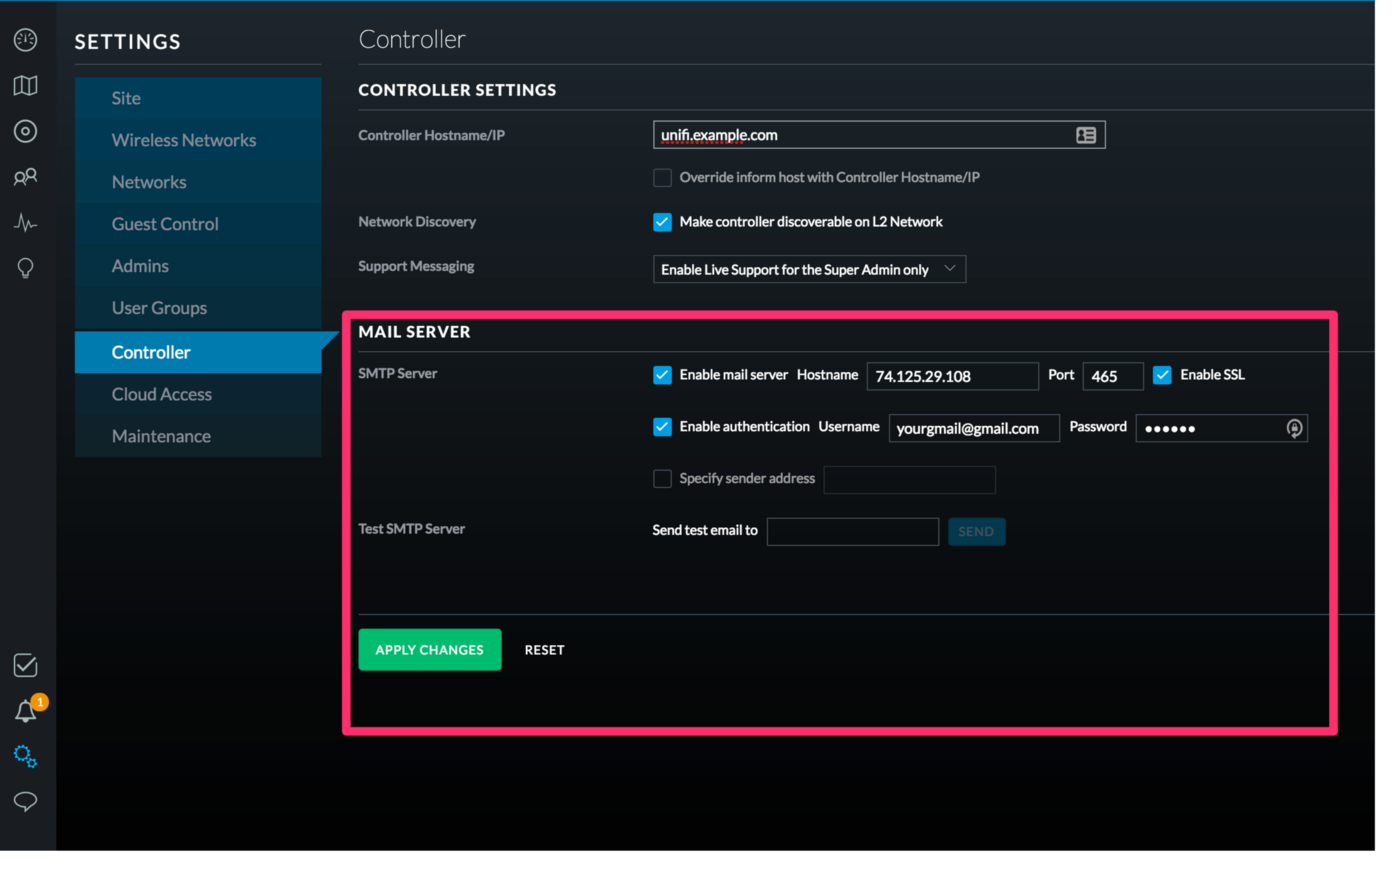 Running Unifi Controller in Docker on Synology - Chad Tindel - Medium